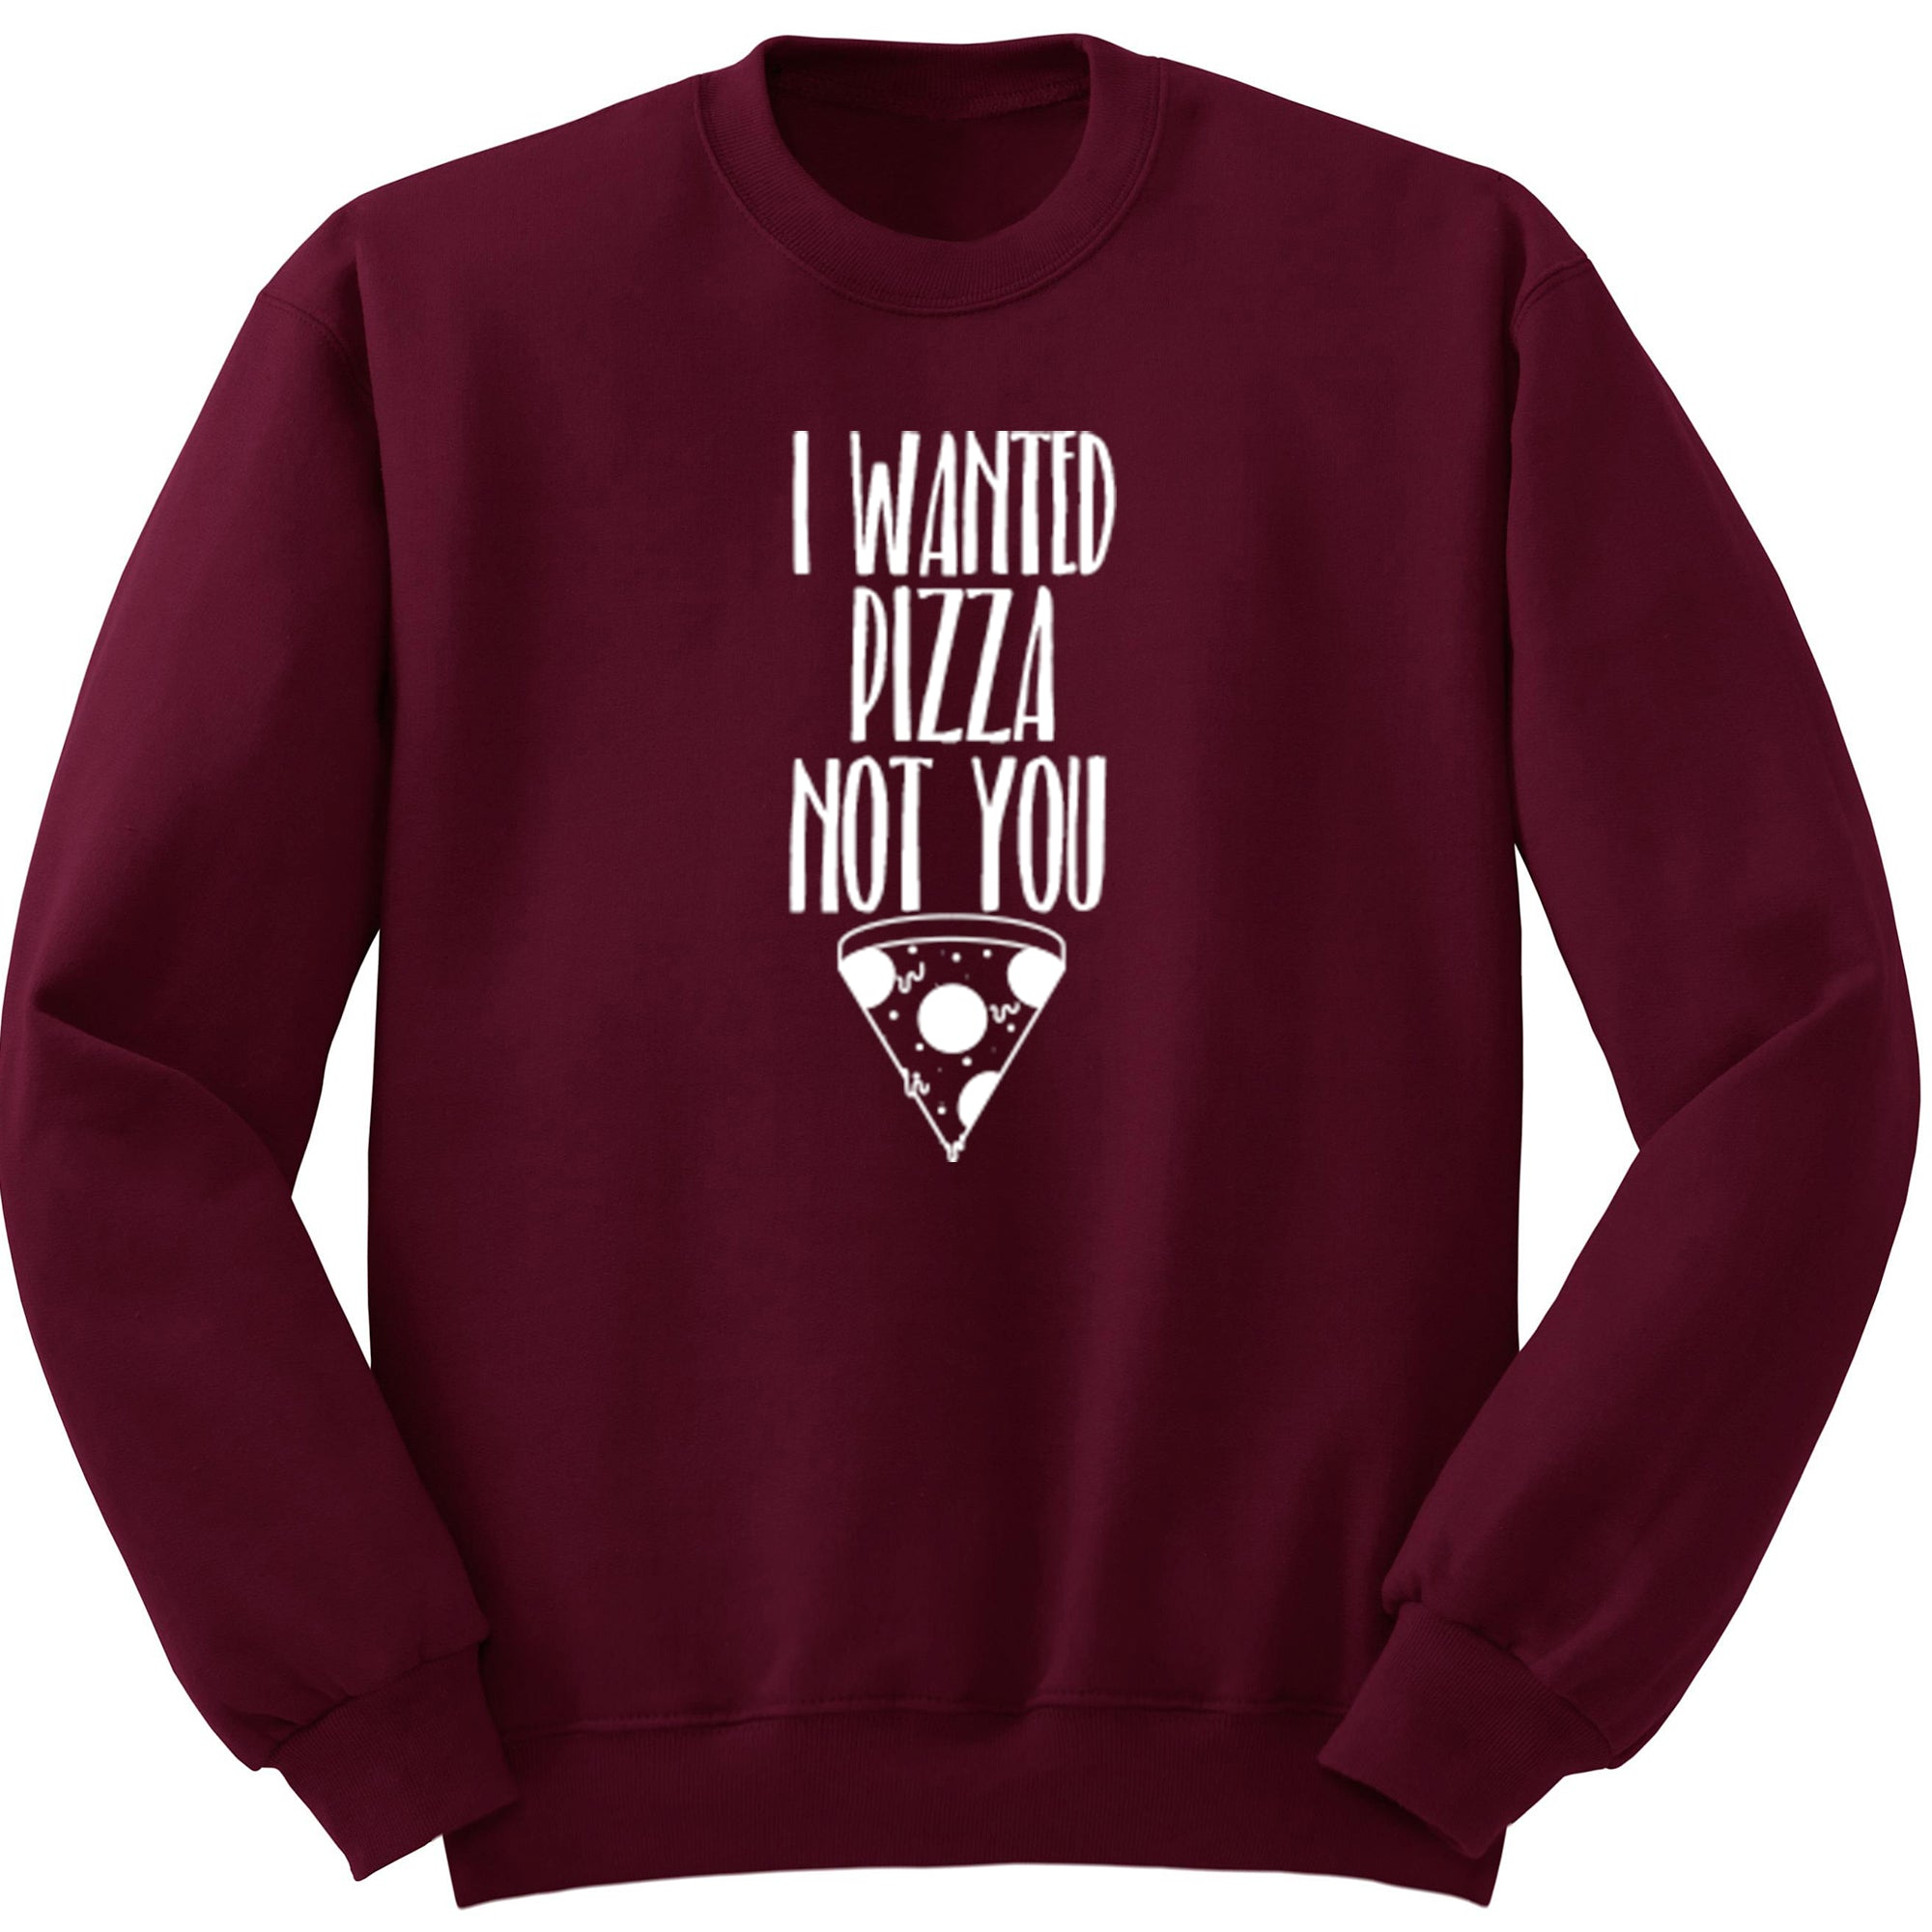 I Wanted Pizza Not You Unisex Jumper S0137 - Illustrated Identity Ltd.